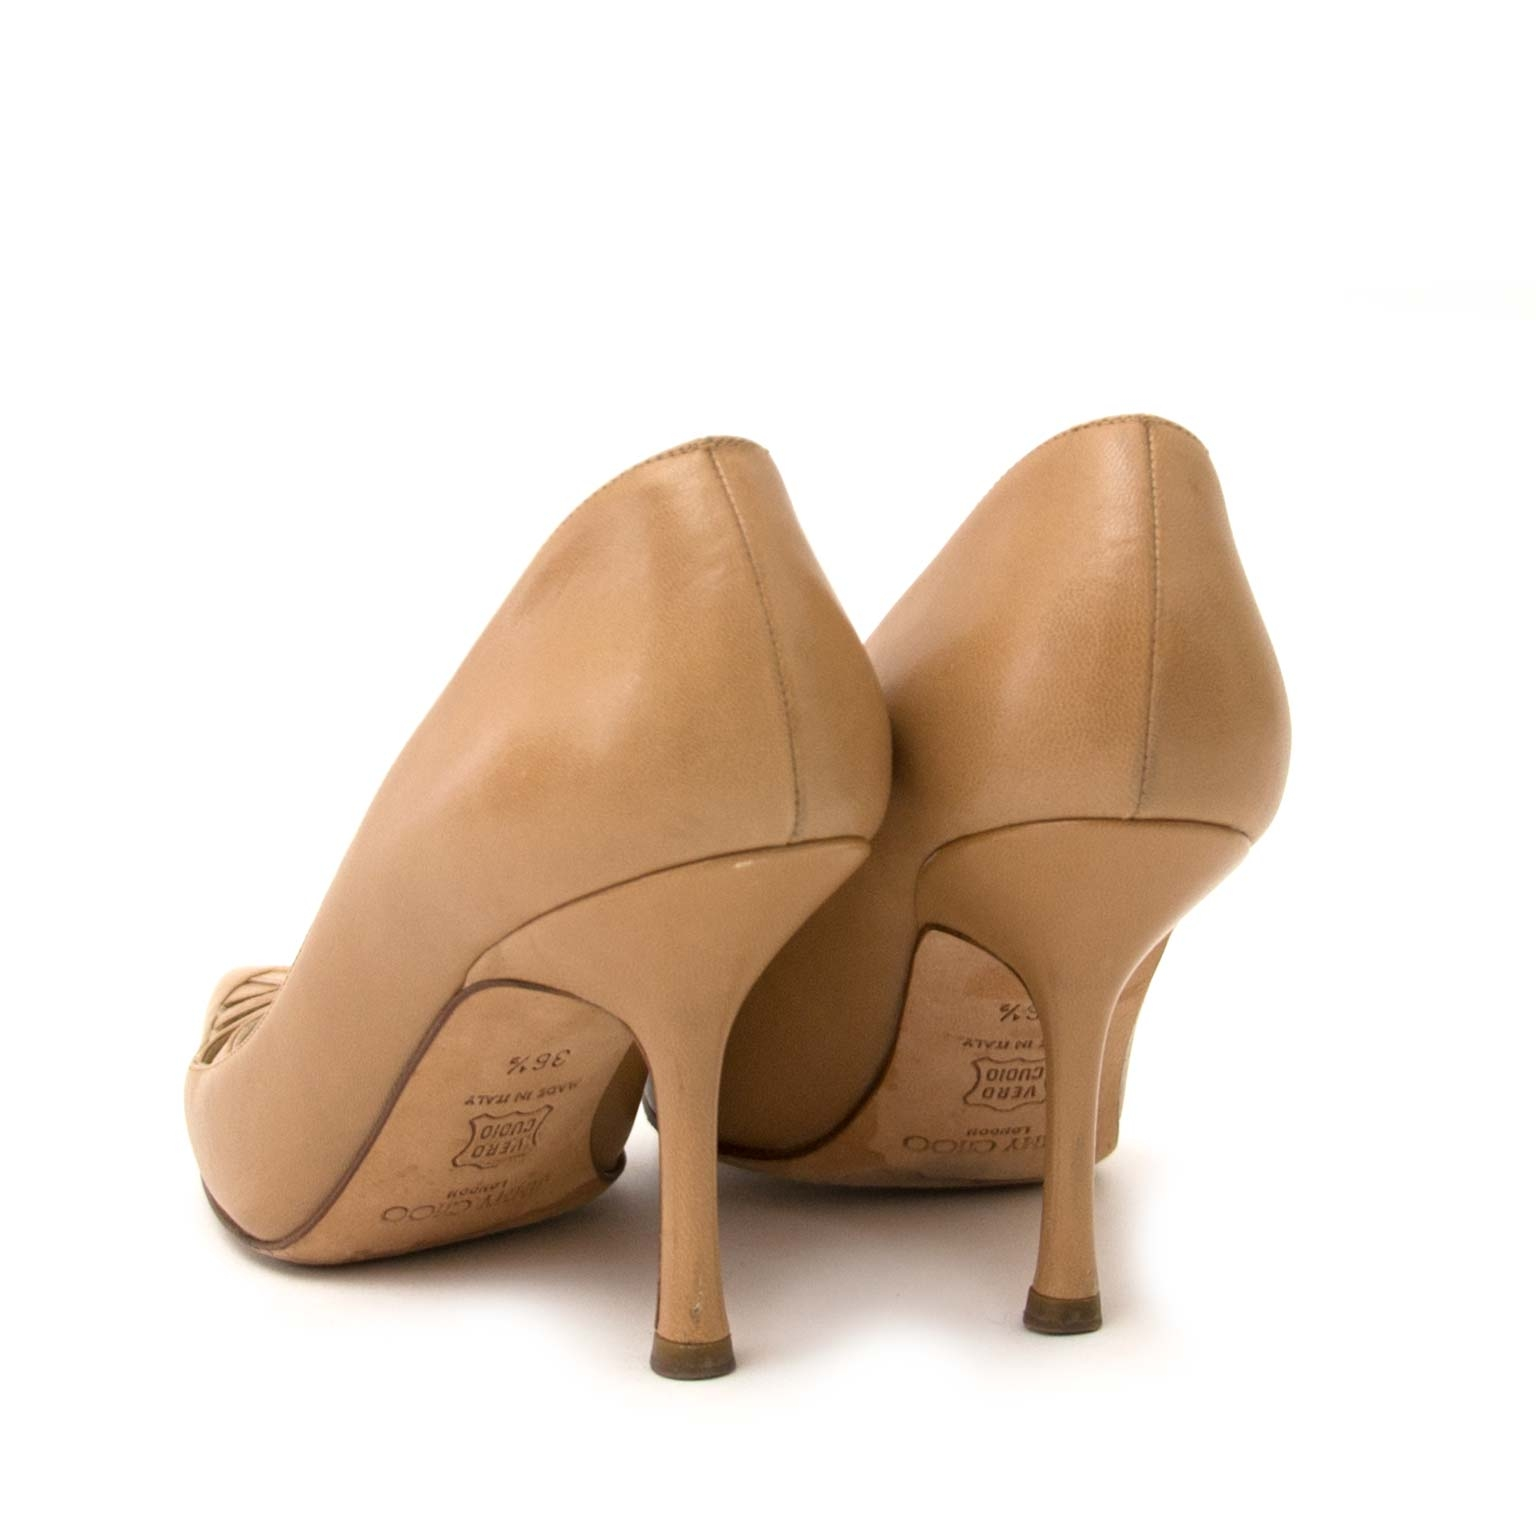 jimmy choo nude pointed toe cut-out pumps now for sale at labellov vintage fashion webshop belgium